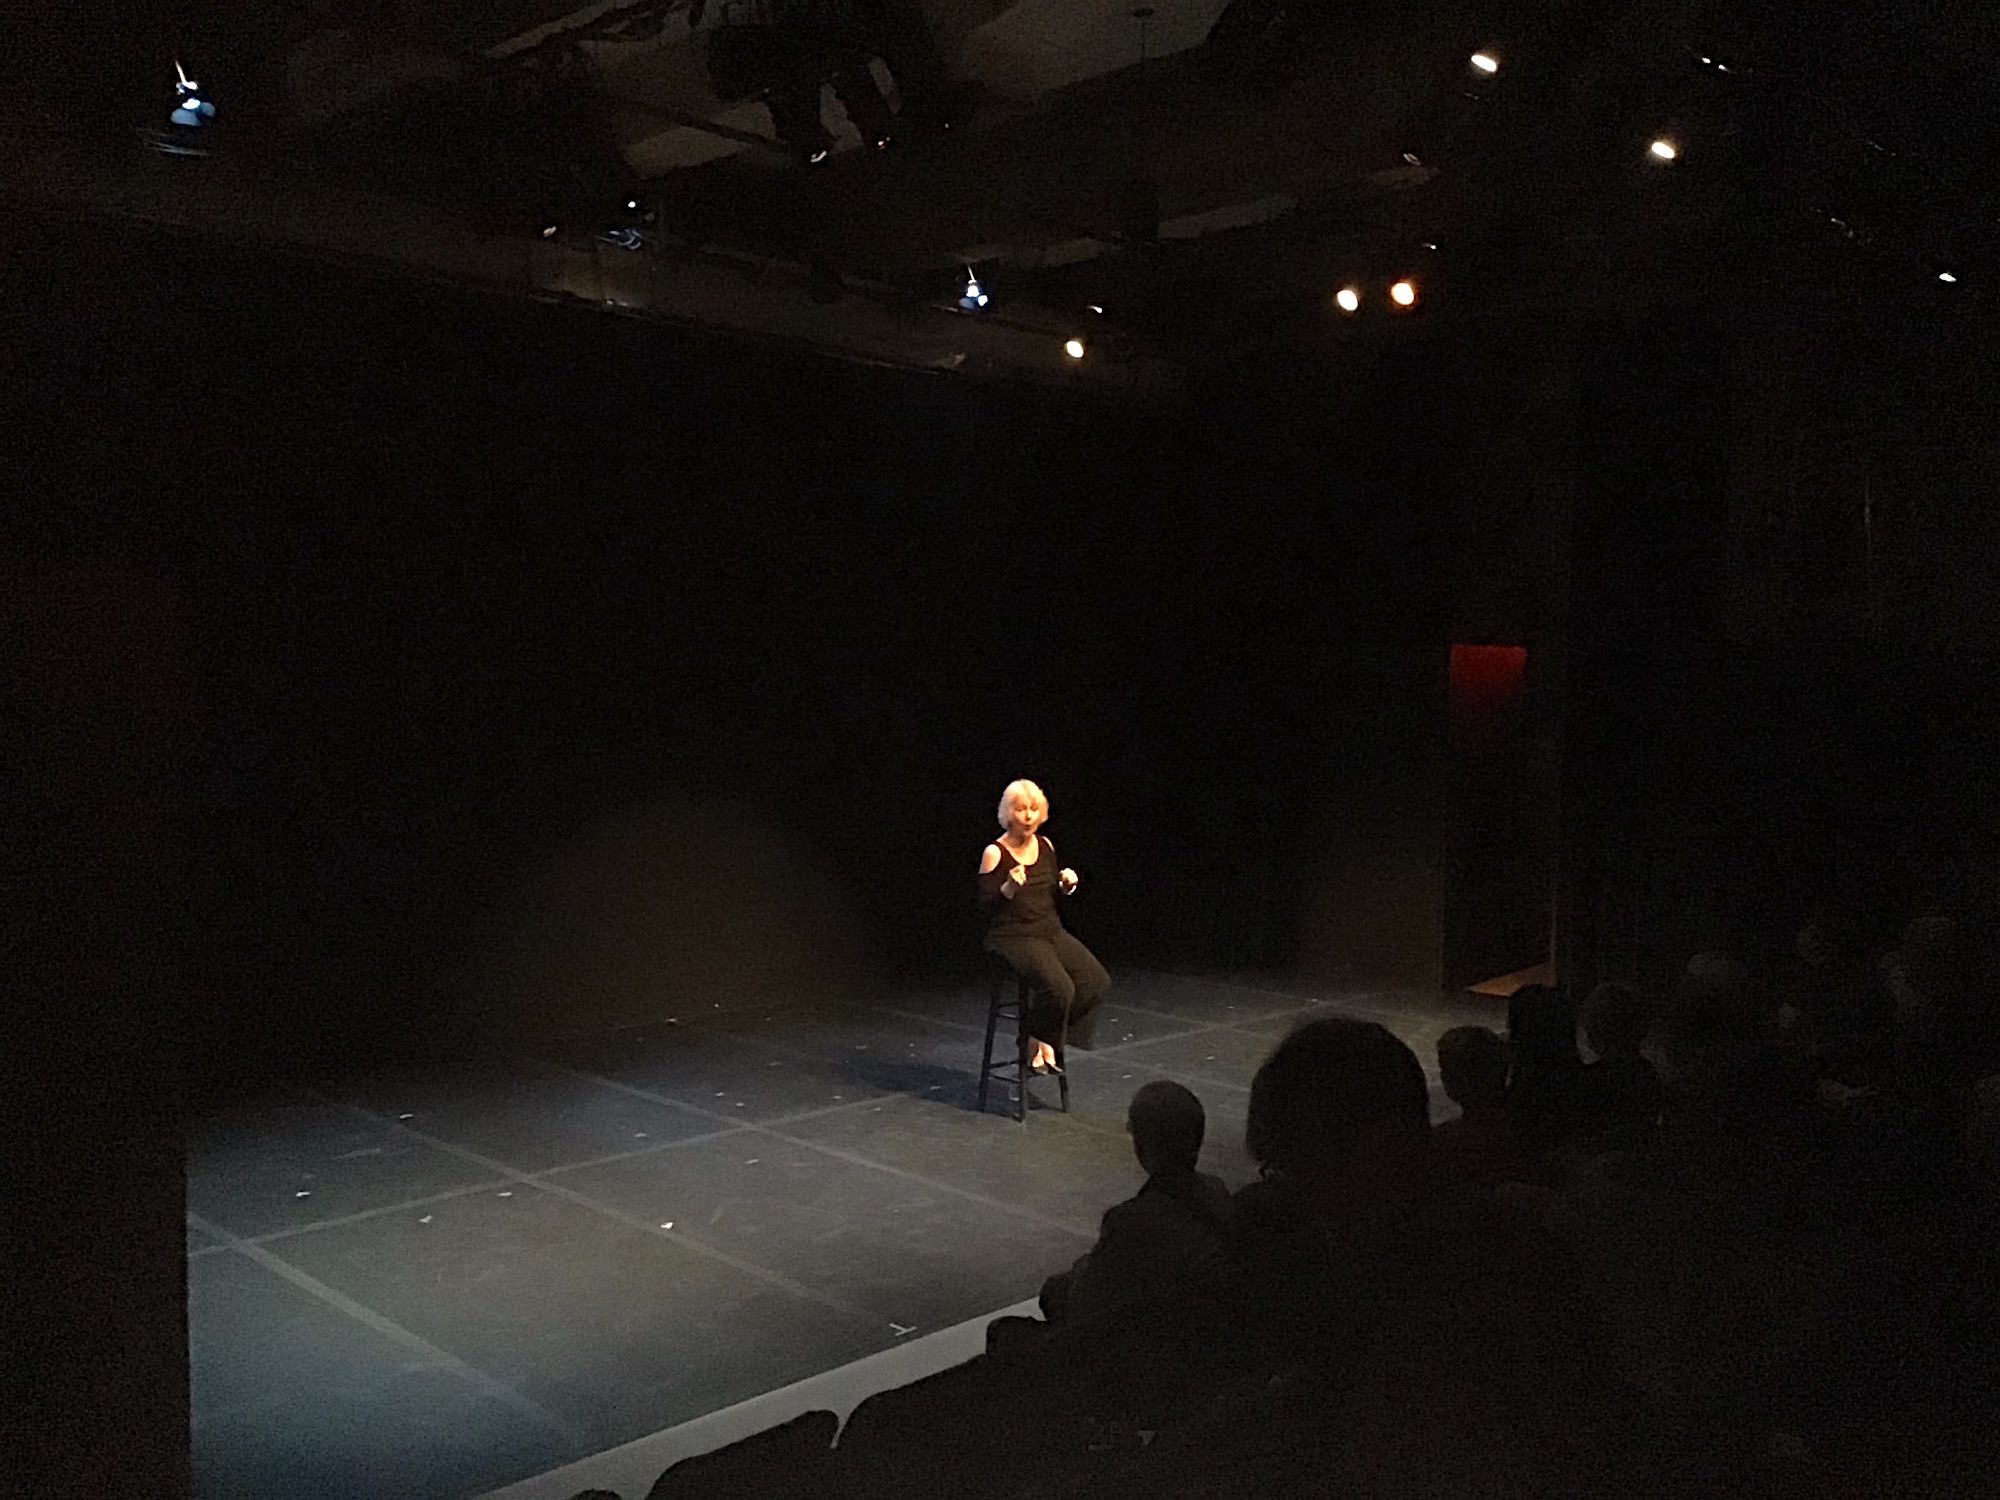 Performer Christina Augello seated on a stool on a theatre stage performing for an audience.